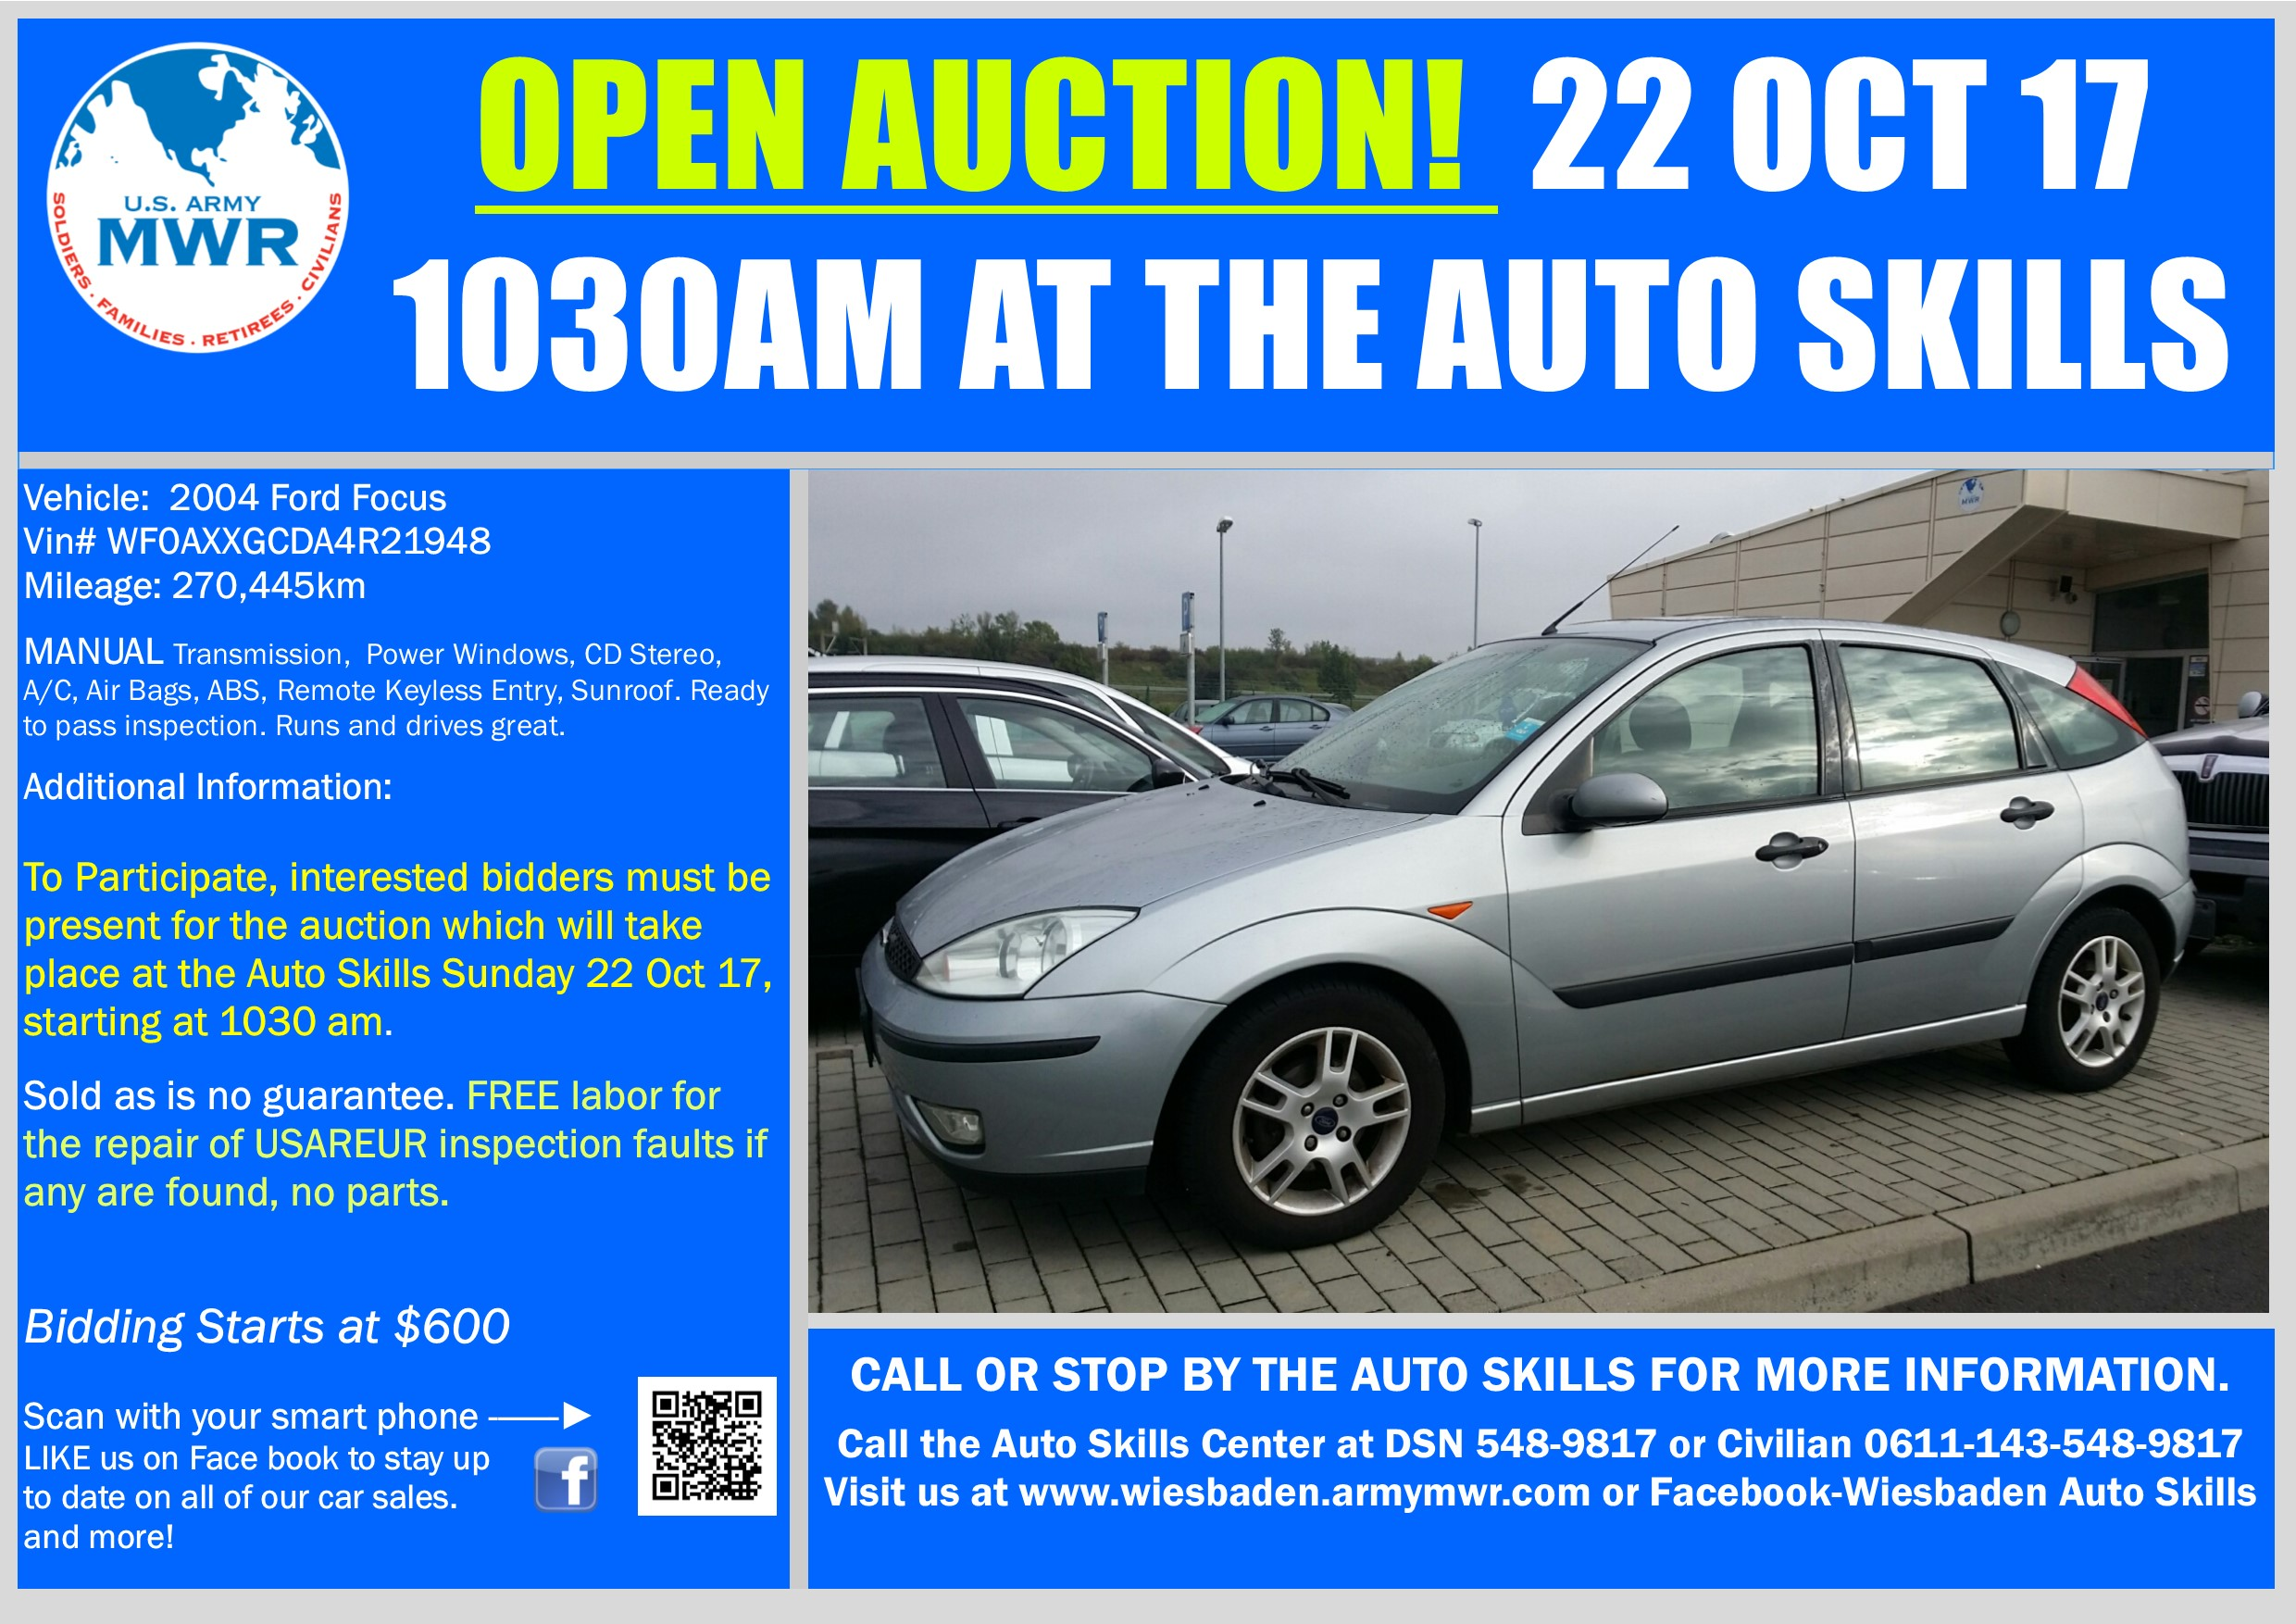 Sale_Ford Focus  22 Oct 17 Open Auction.jpg